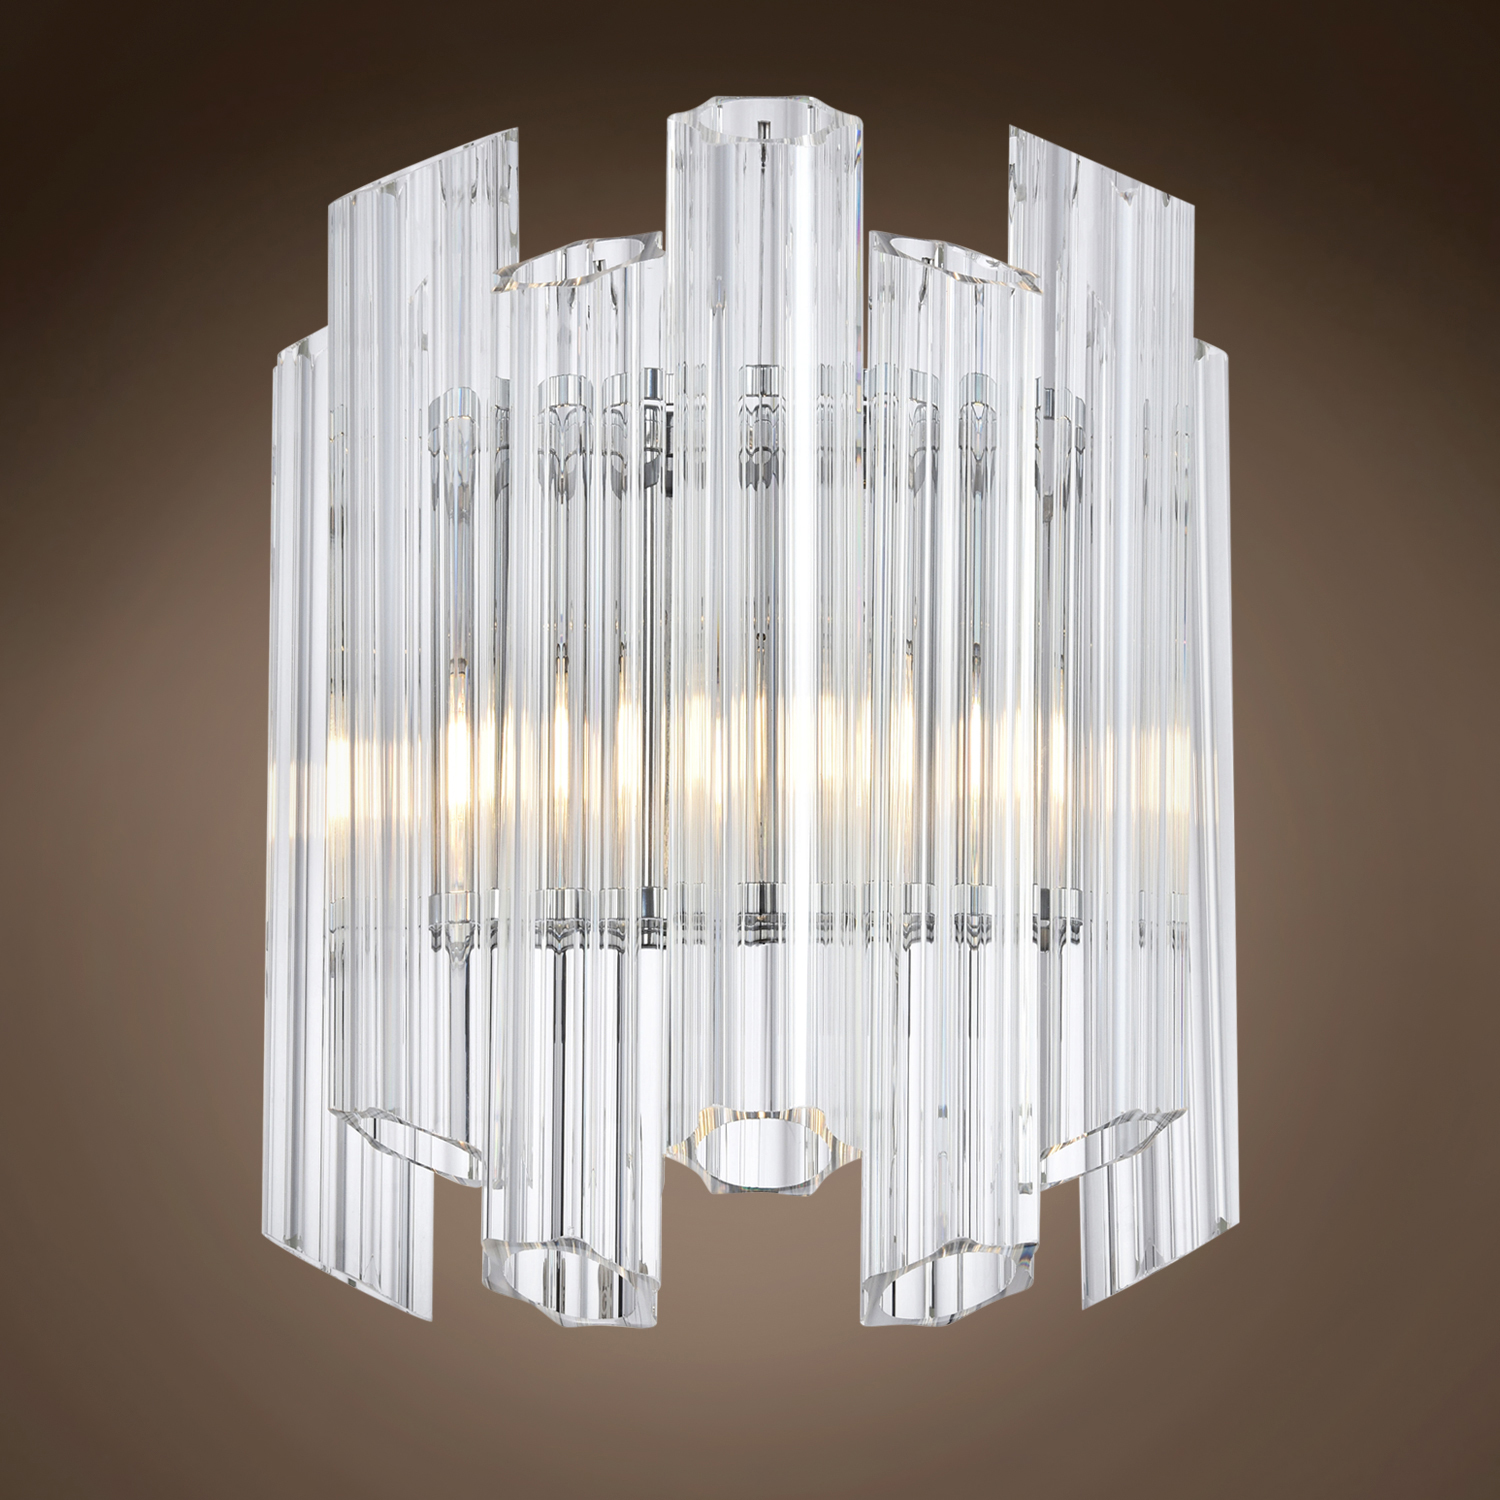 Gatsby Luminaires German Glass Tube 1 Light 7 Chrome Wall Sconce 702068 From German Glass Tube Collection